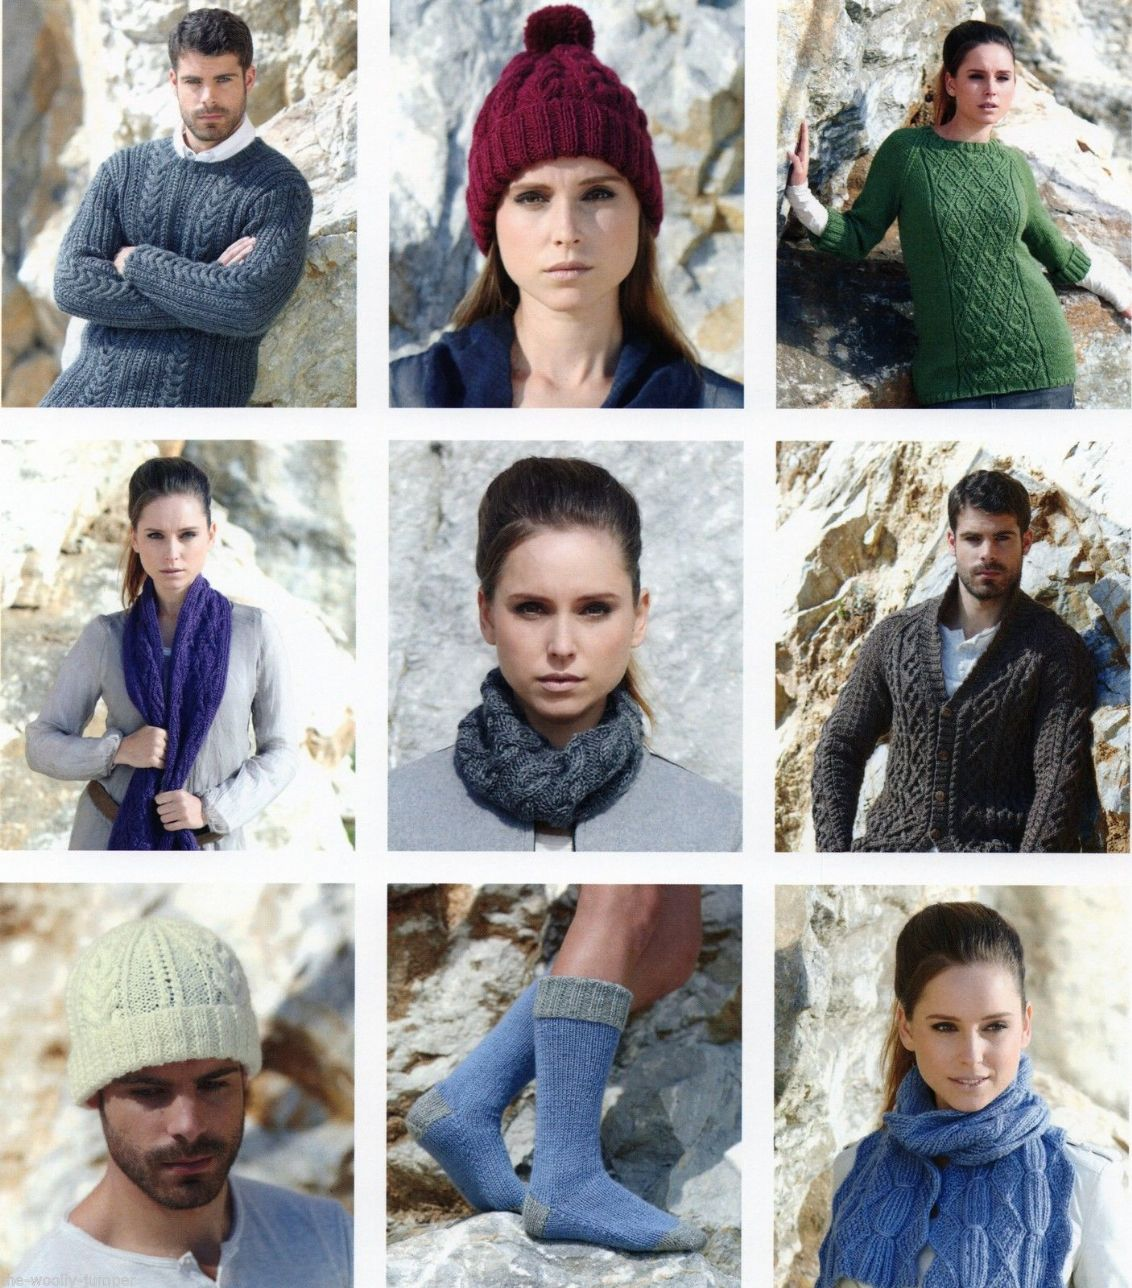 6fbda732e 471 - SIRDAR WOOL RICH ARAN KNITTING PATTERN BOOKLET - 22 KNITS FOR WOMEN    MEN